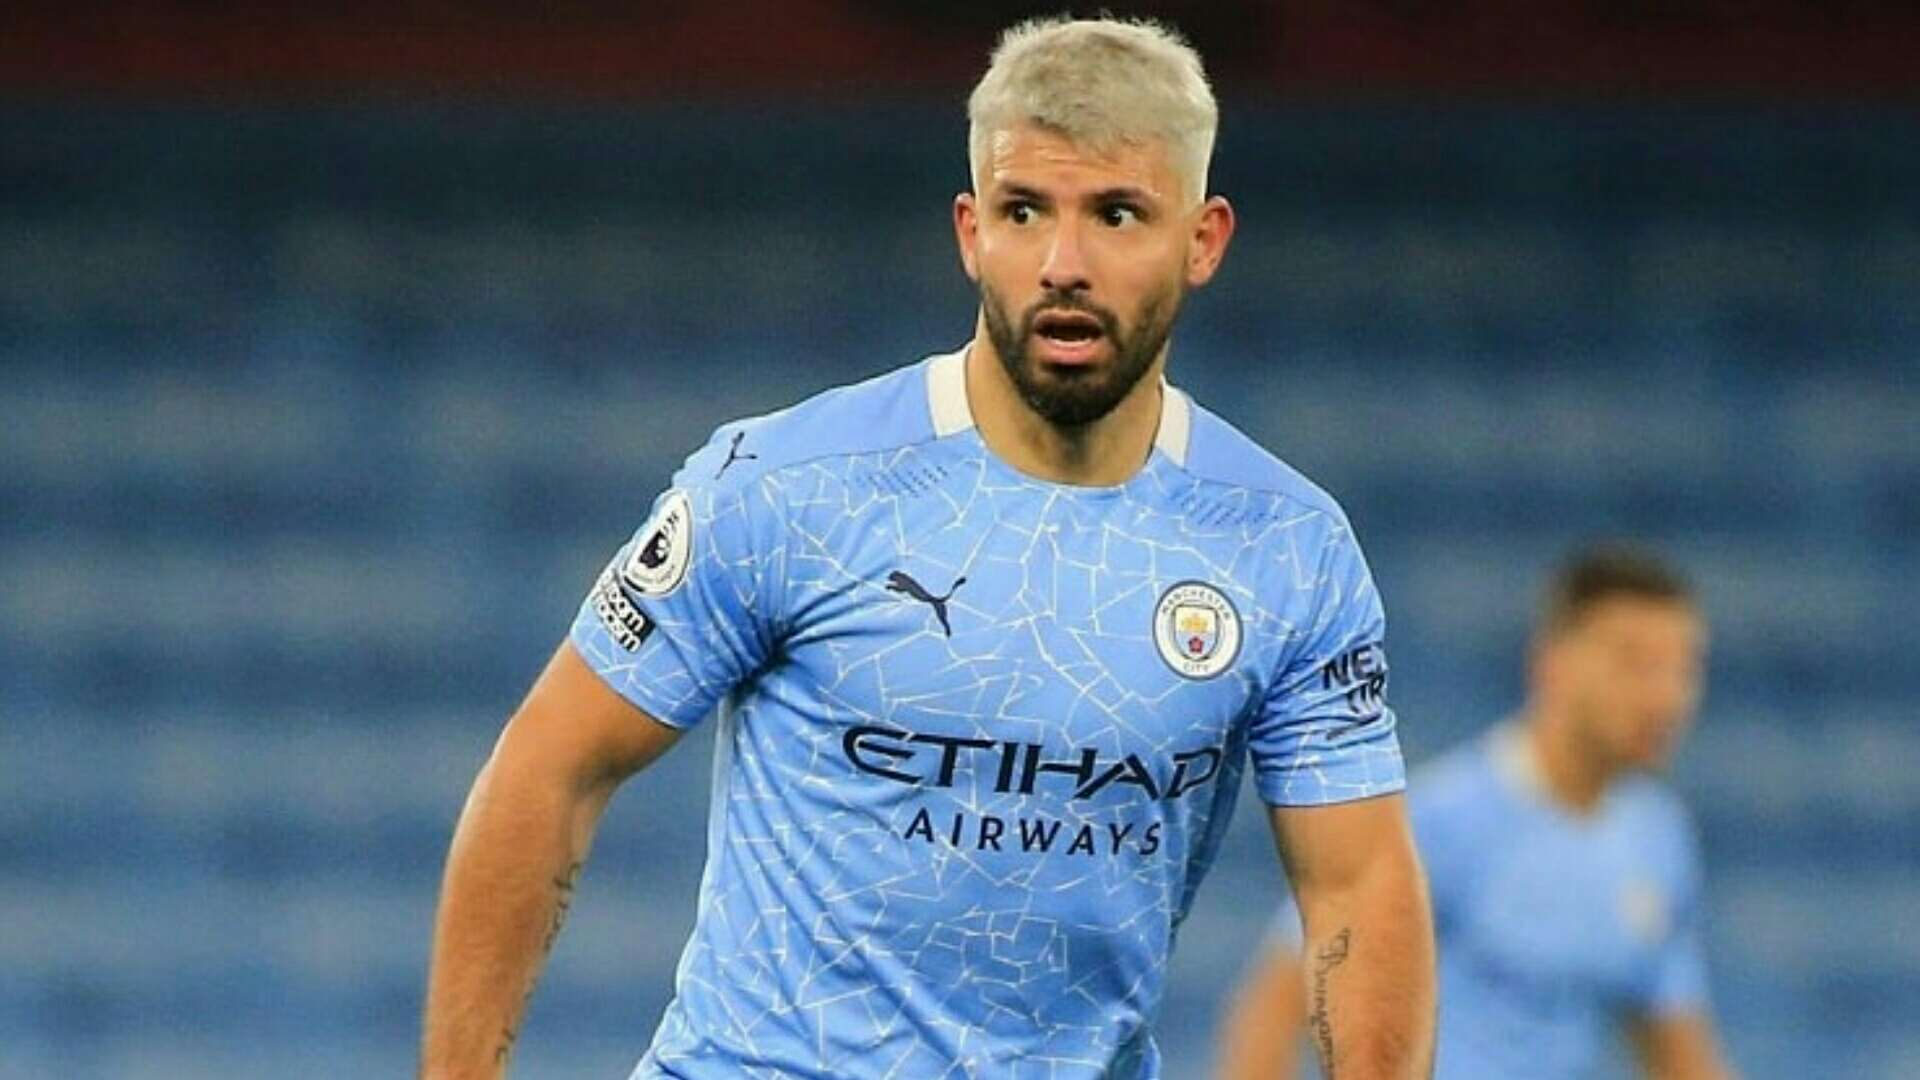 'He's done' 'Needs to take a pay cut to stay' – Man City fans reacts as news on Sergio Aguero contract situation emerges